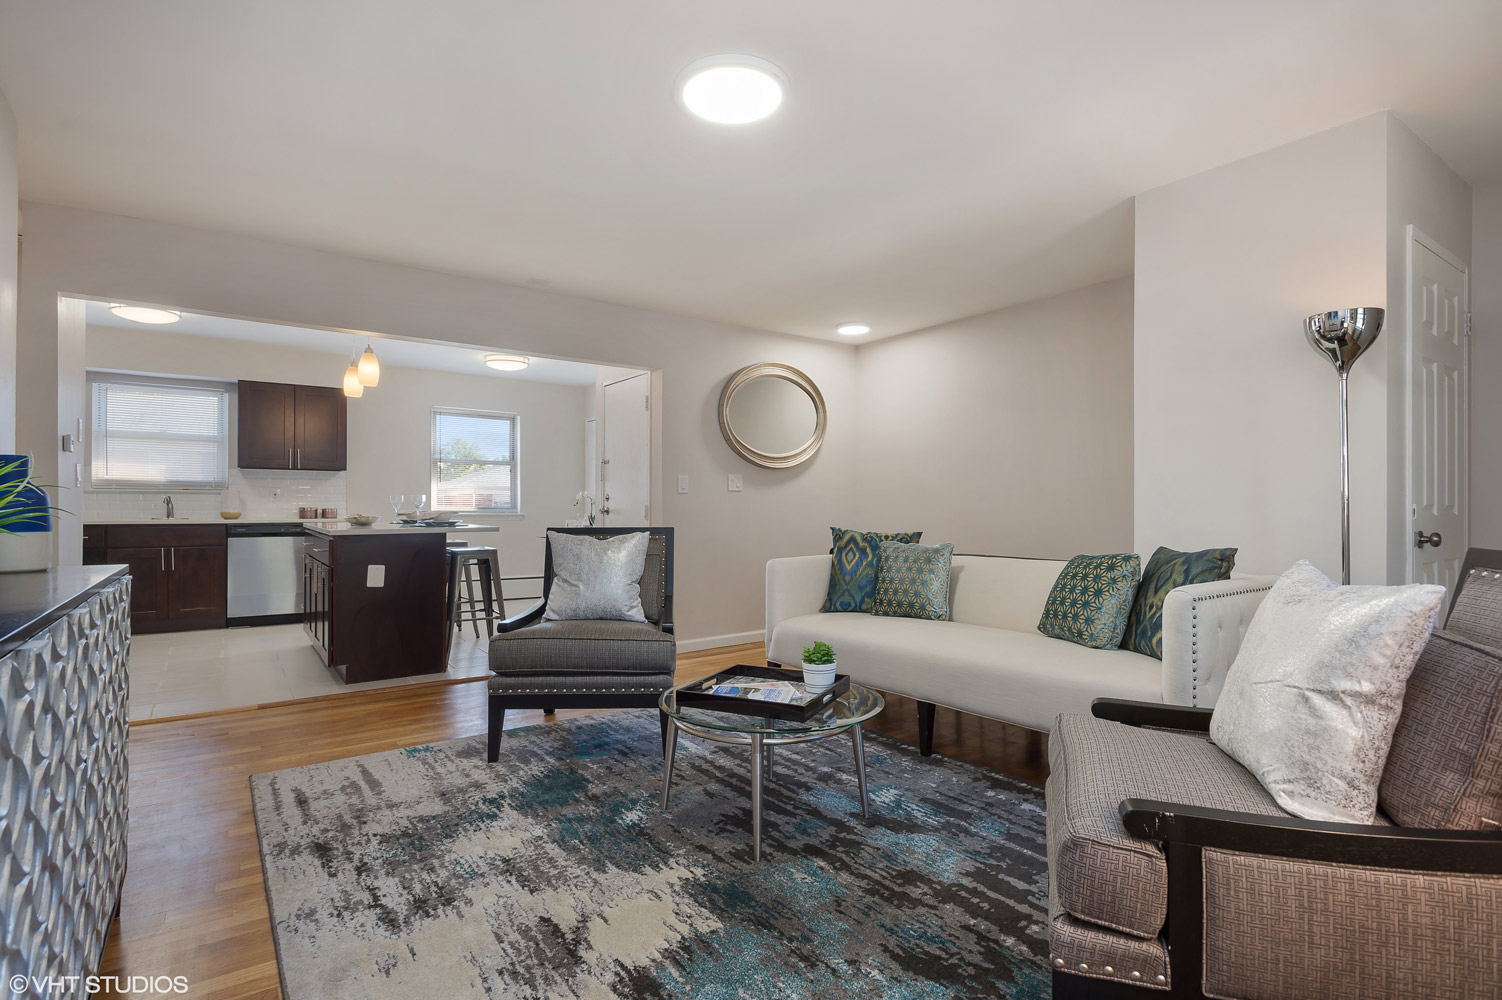 Neutral Color Scheme at Grandview Gardens Apartments in Edison, New Jersey